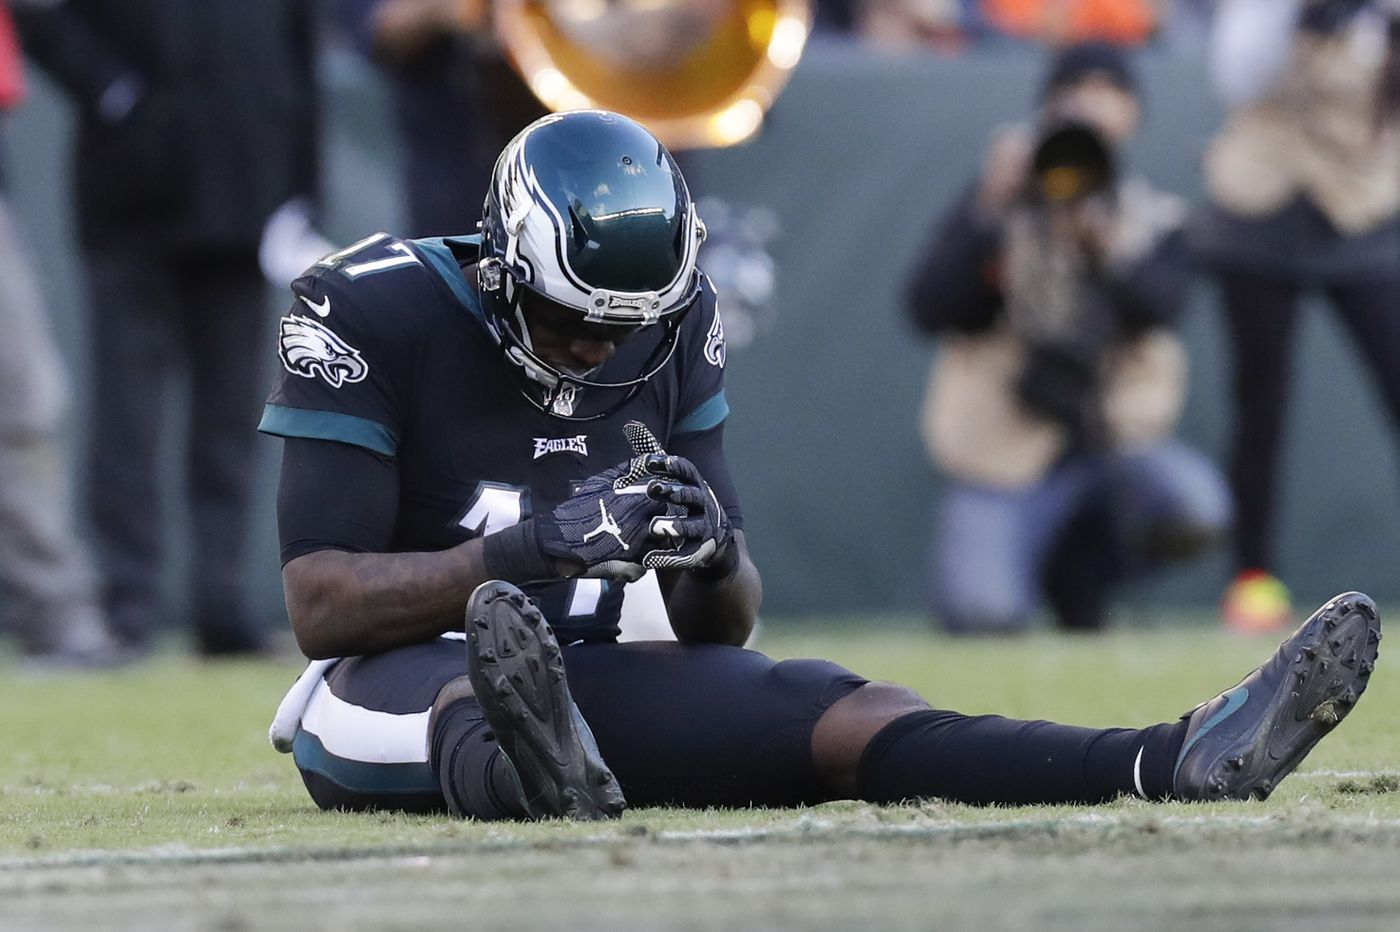 Should the Eagles move on from Alshon Jeffery this offseason? Is it even possible?